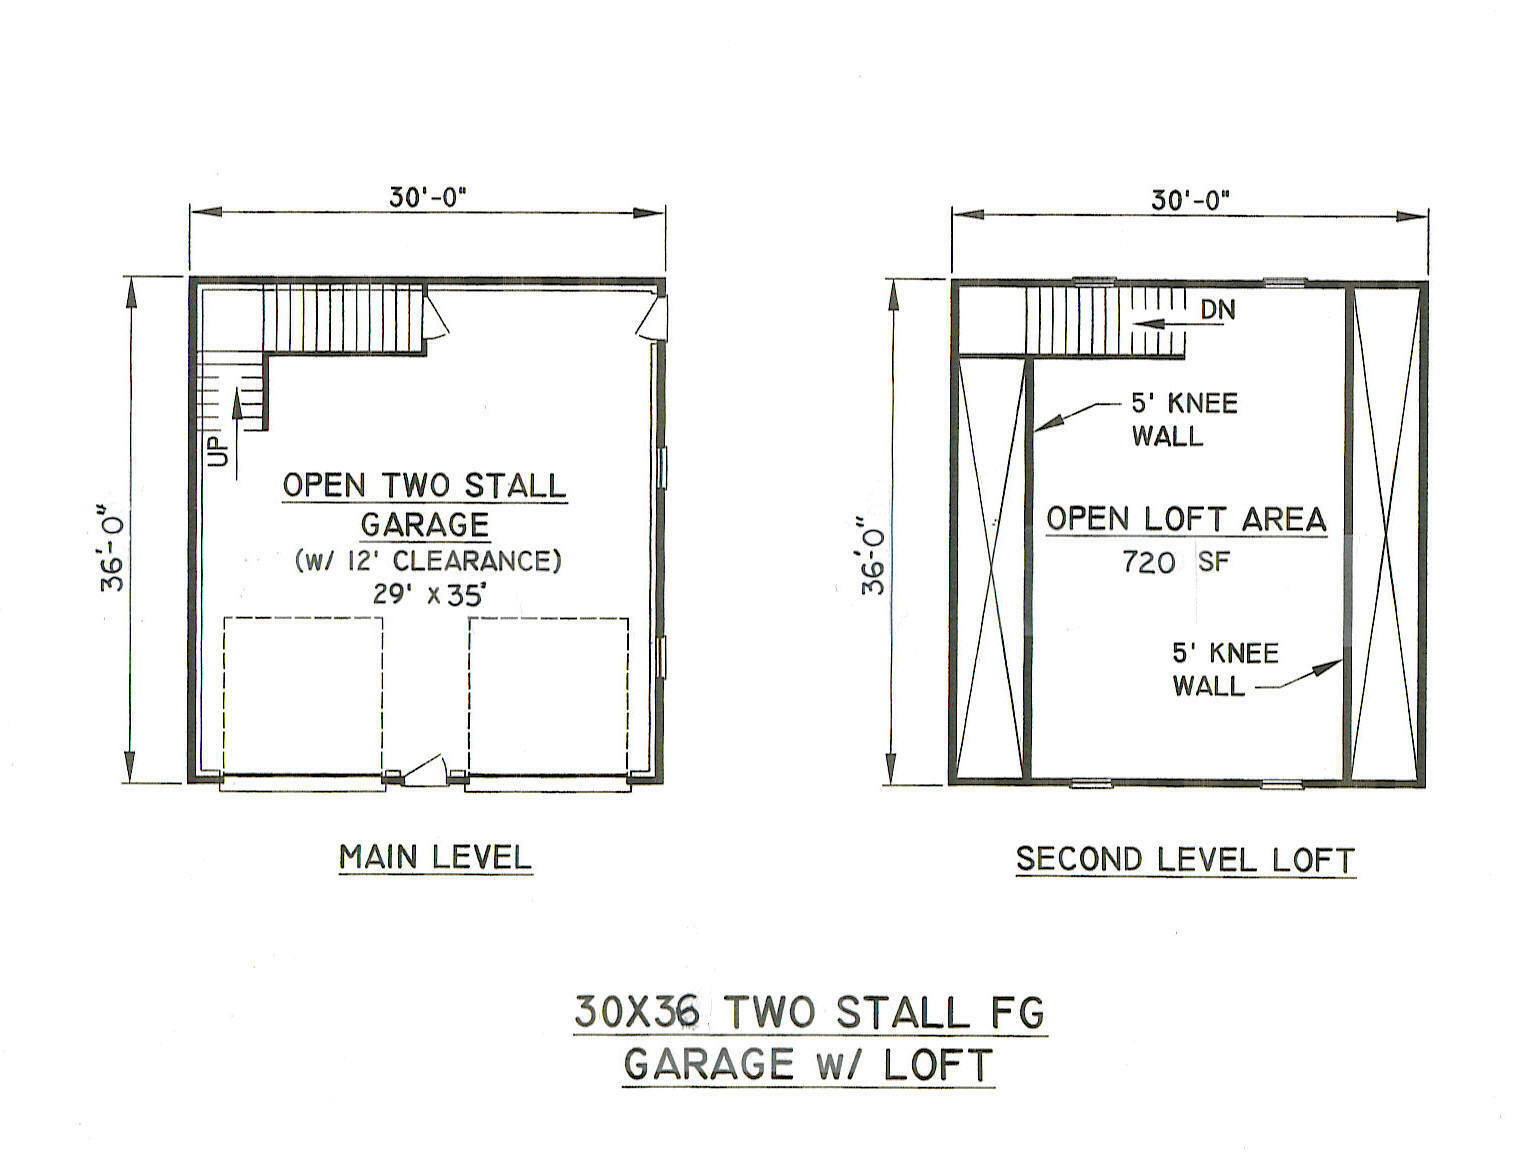 30x36 2 stall fg garage building blueprint plans w loft for 2 stall garage plans